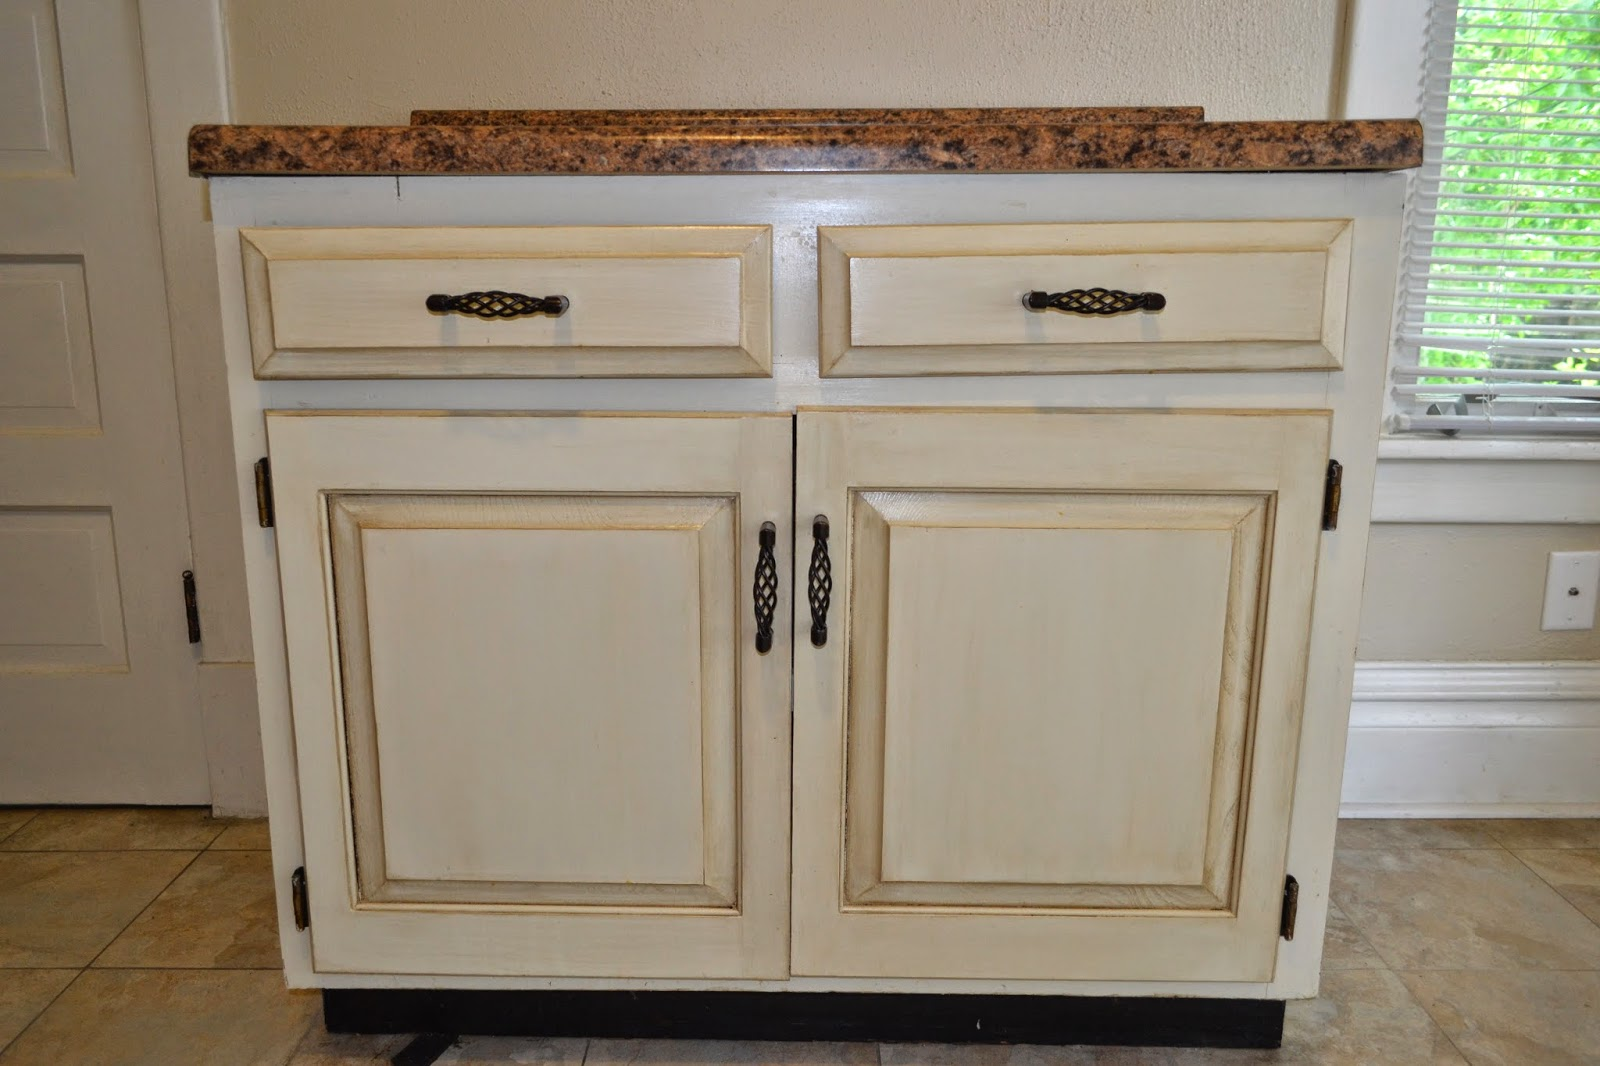 Rustoleum Kitchen Cabinets White Glazed Cabinet Transformations A Review A Year Later